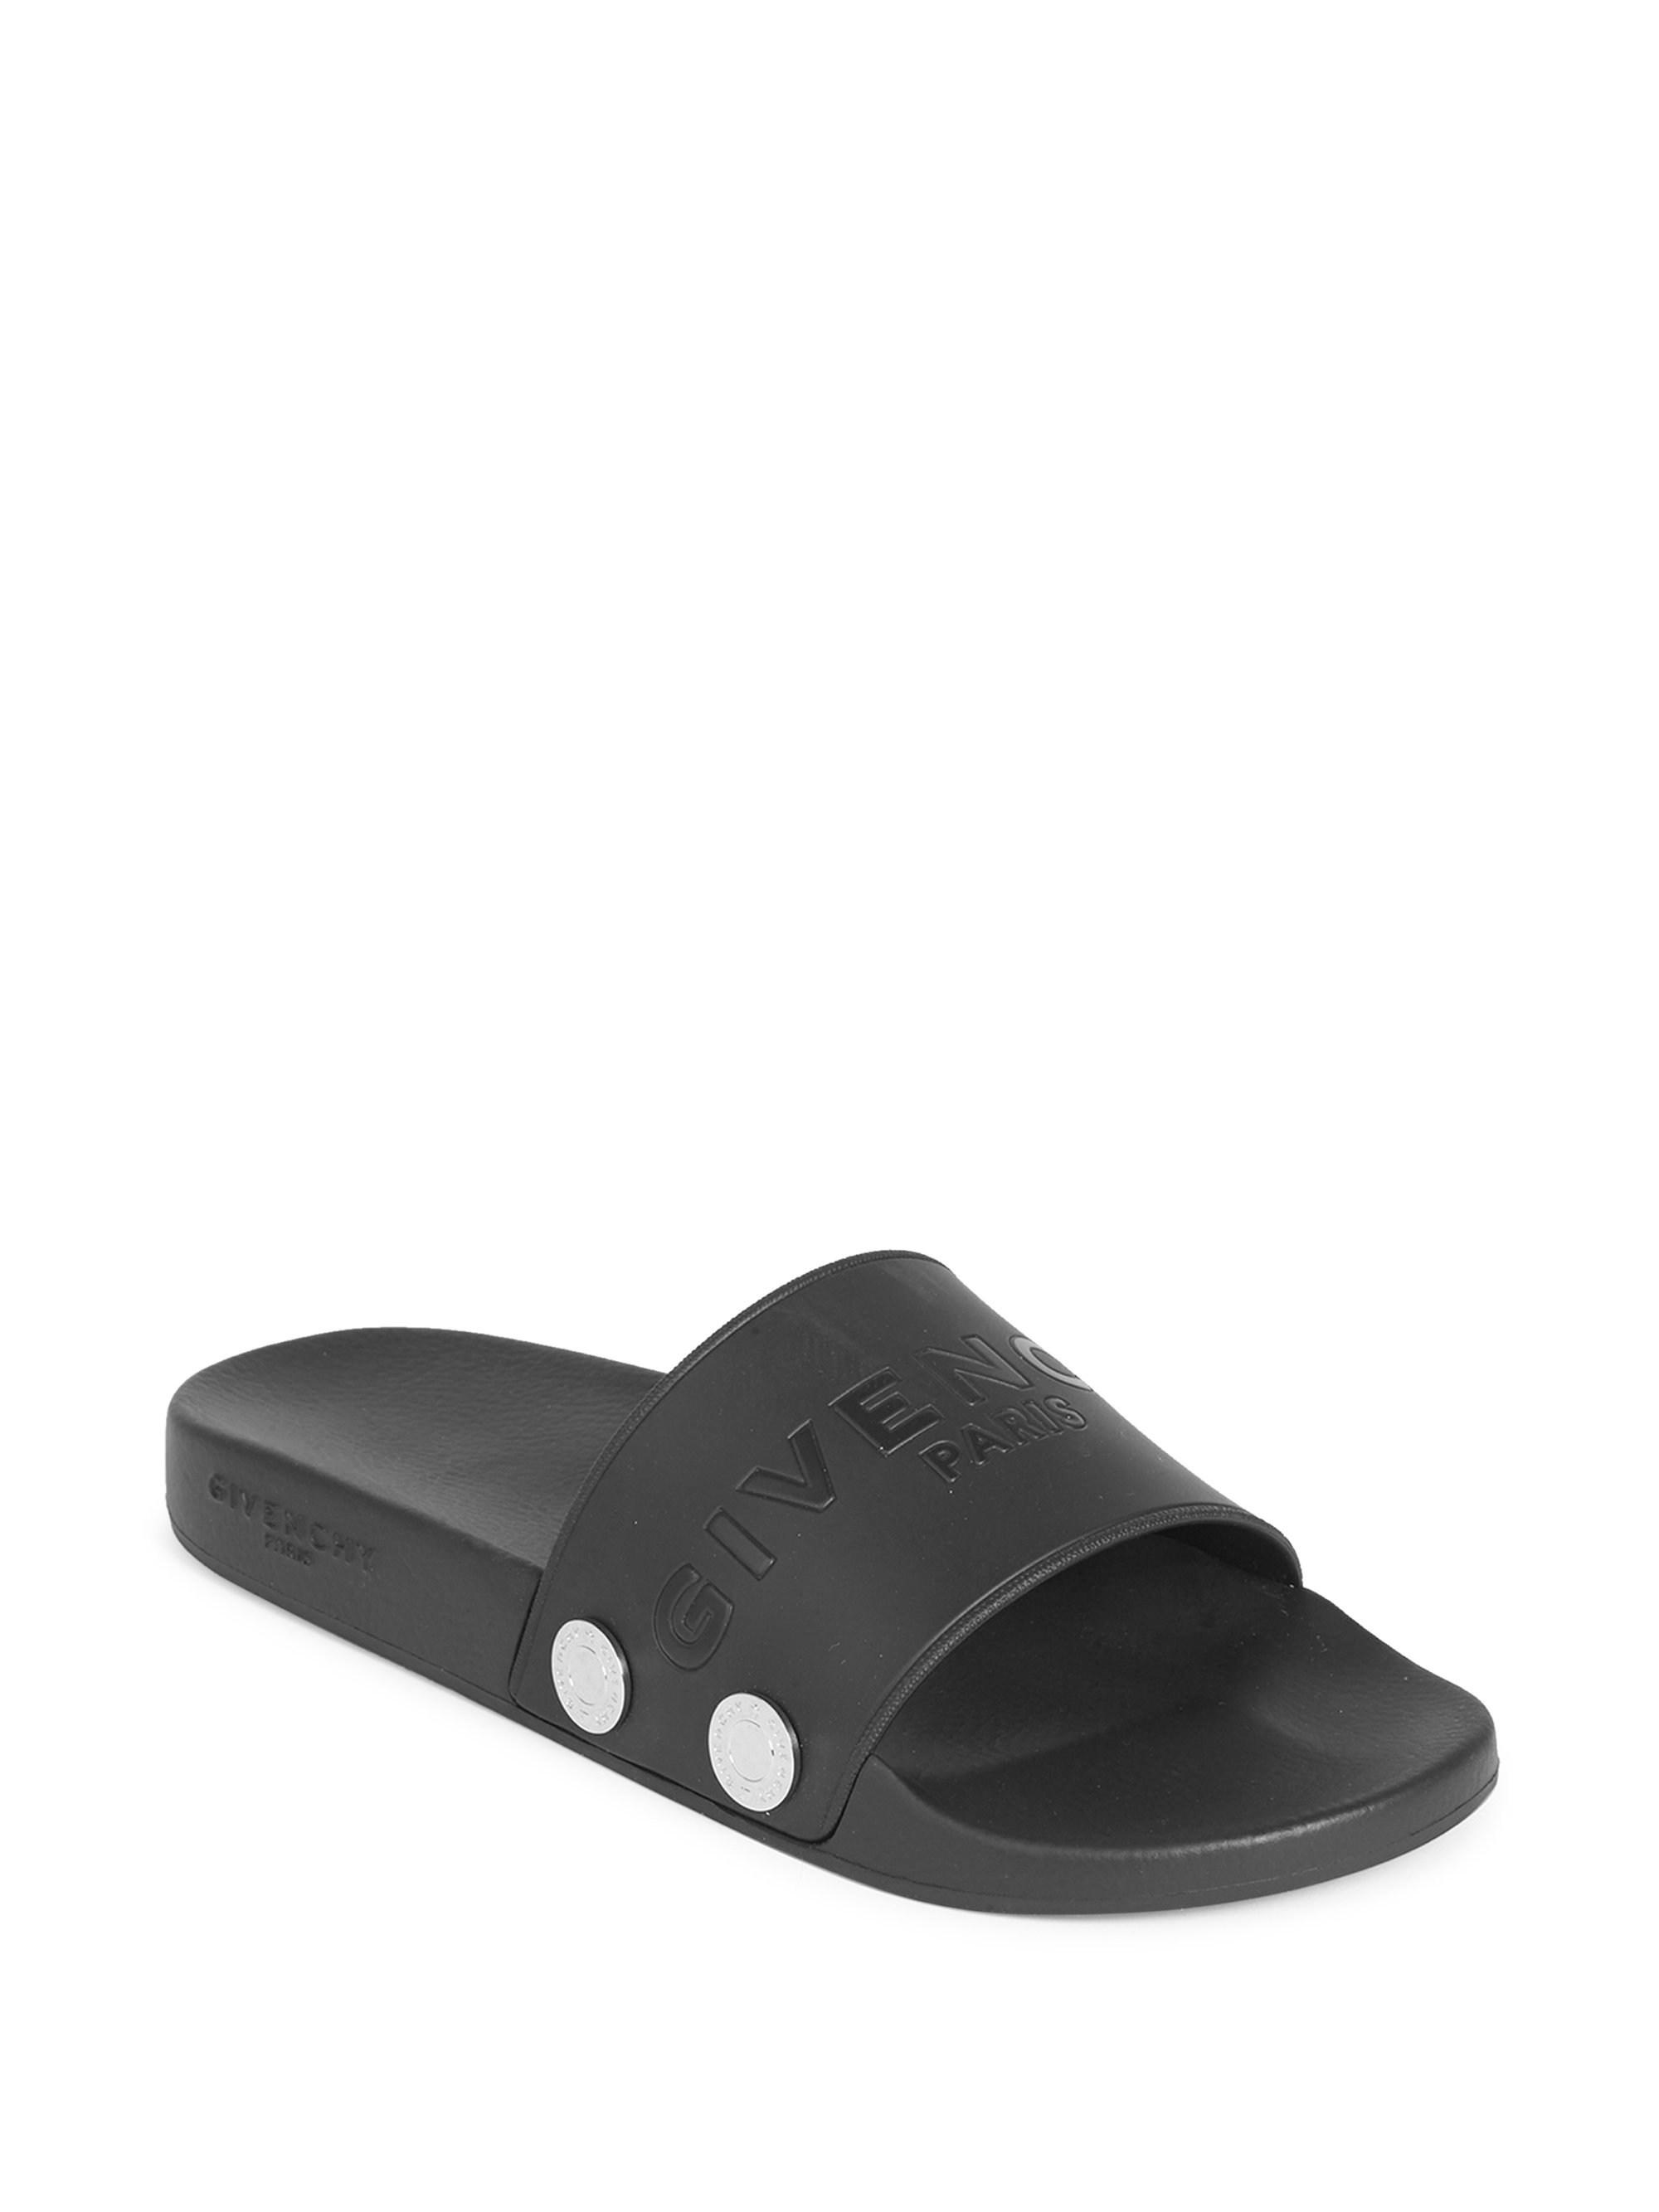 05e8959a3ca5 Lyst - Givenchy Logo Slide Sandals in Black for Men